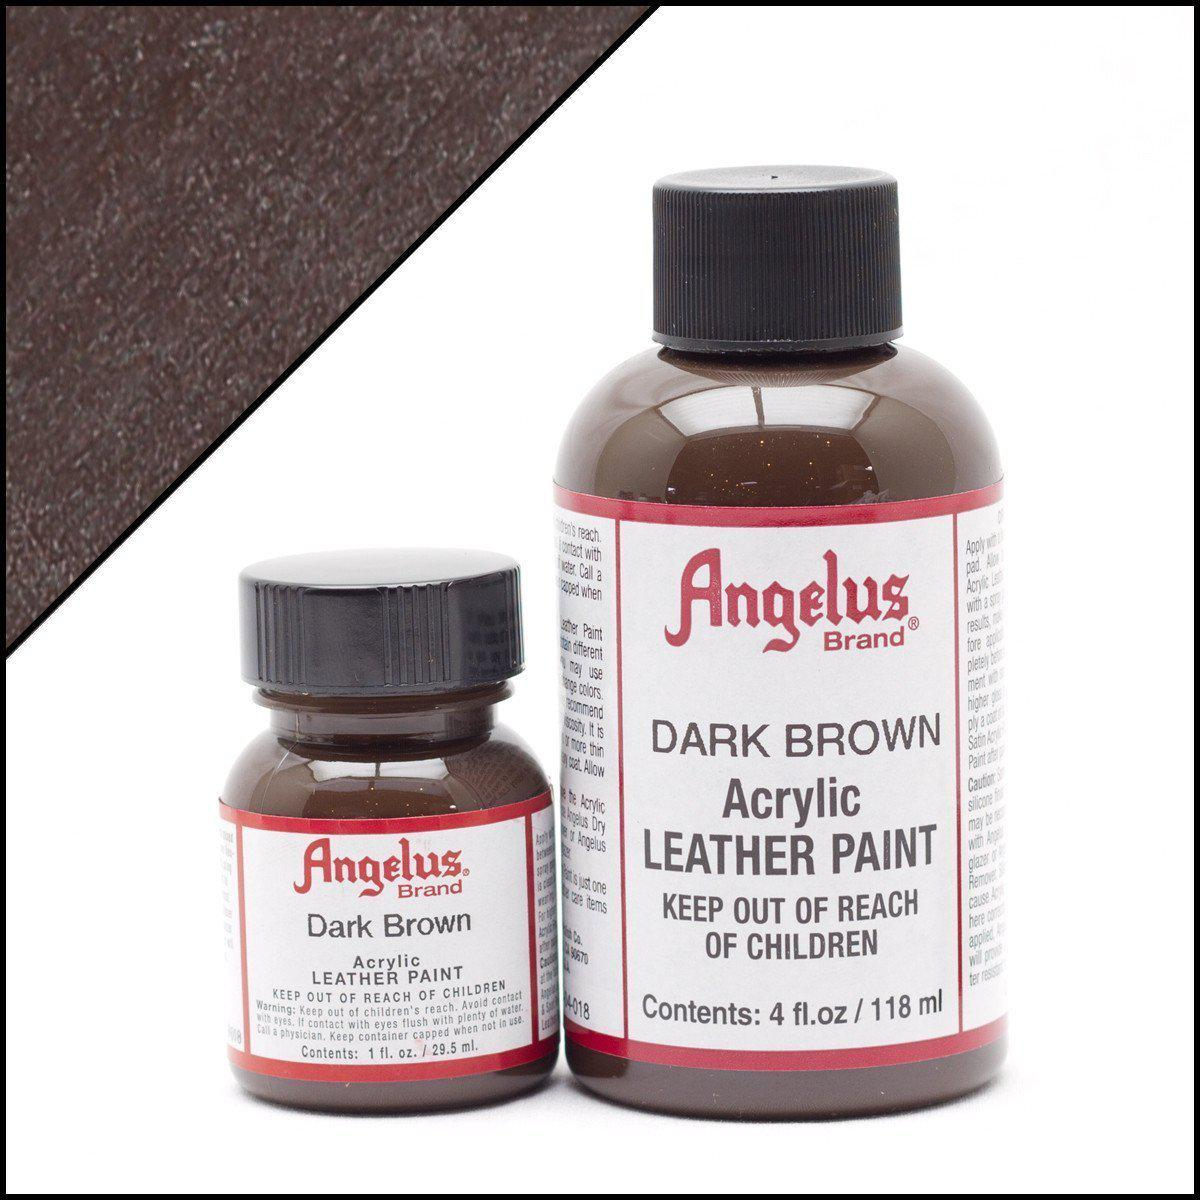 Dark Brown-Angelus-Leather Paint-TorontoCollective